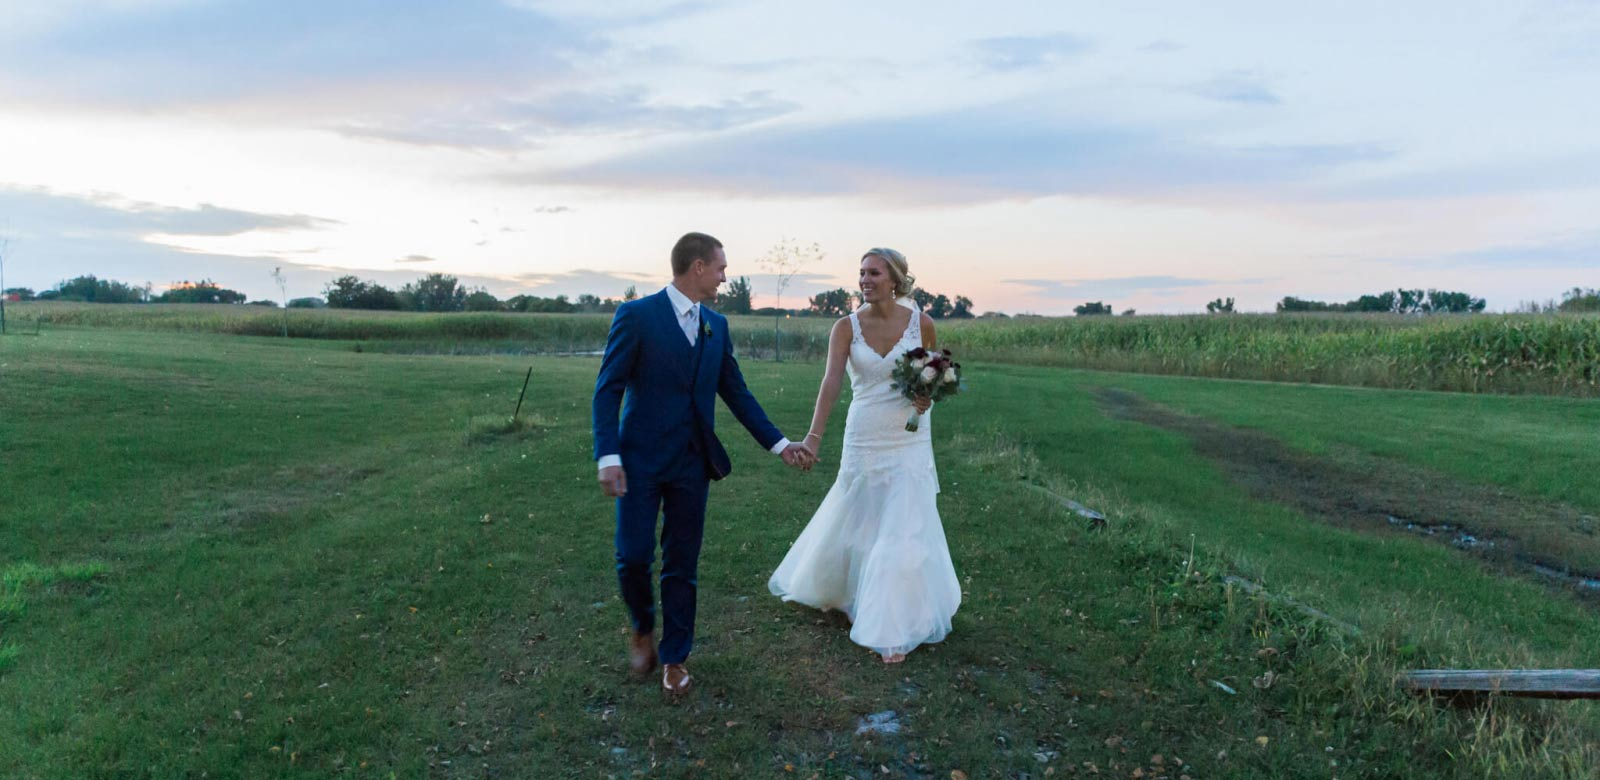 Vineyard Wedding in Central Minnesota